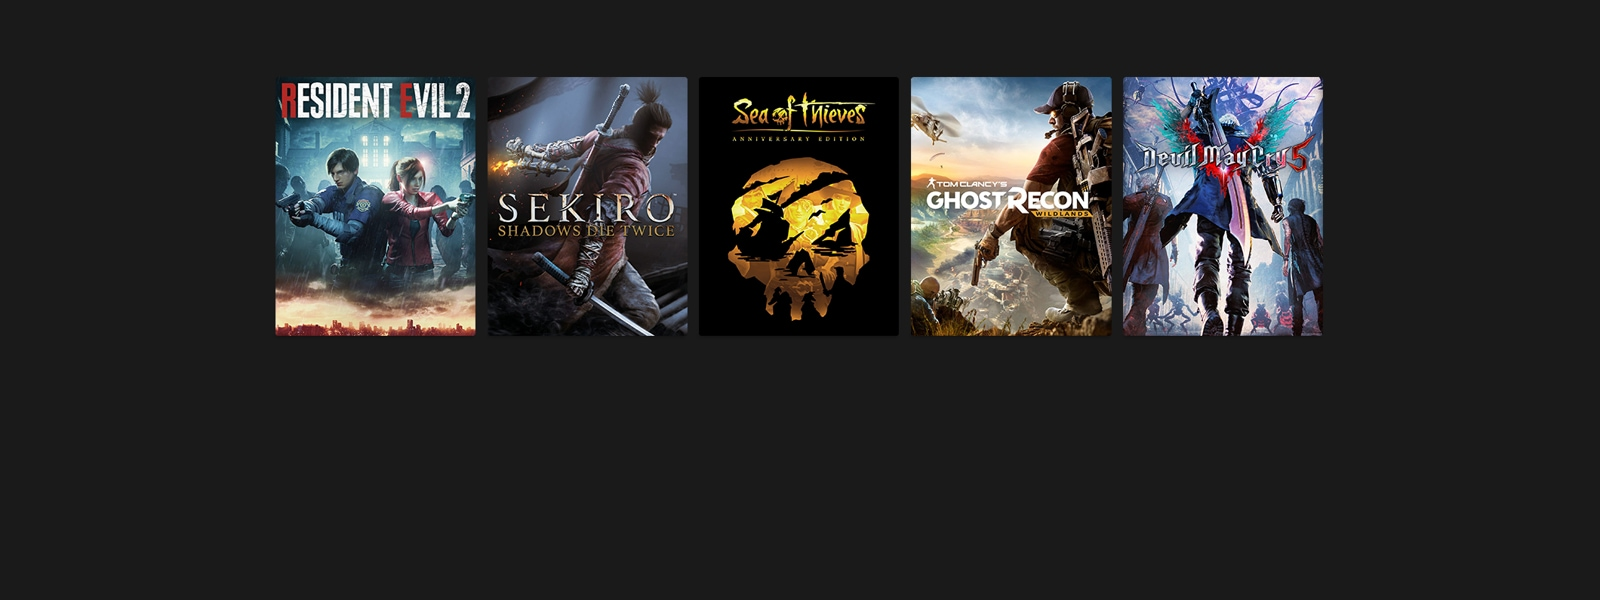 Resident Evil 2, Sekiro, Sea of Thieves, Ghost Recon, Devil May Cry 5